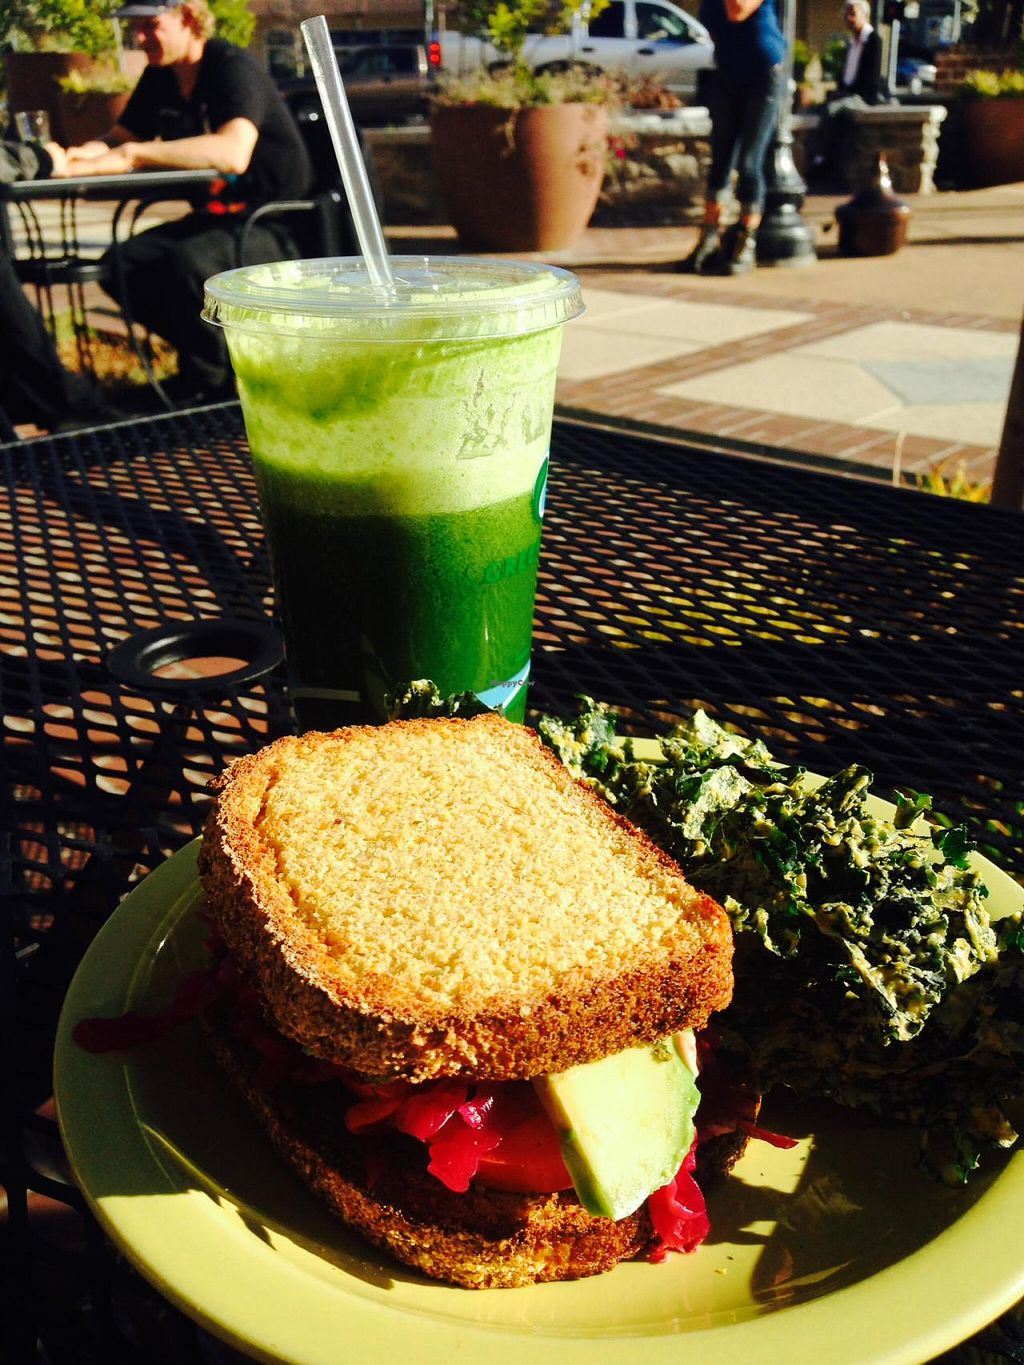 """Photo of Nectar Cafe  by <a href=""""/members/profile/quintess6"""">quintess6</a> <br/>Yum-which and tropical green juice :) <br/> January 4, 2014  - <a href='/contact/abuse/image/44264/61762'>Report</a>"""